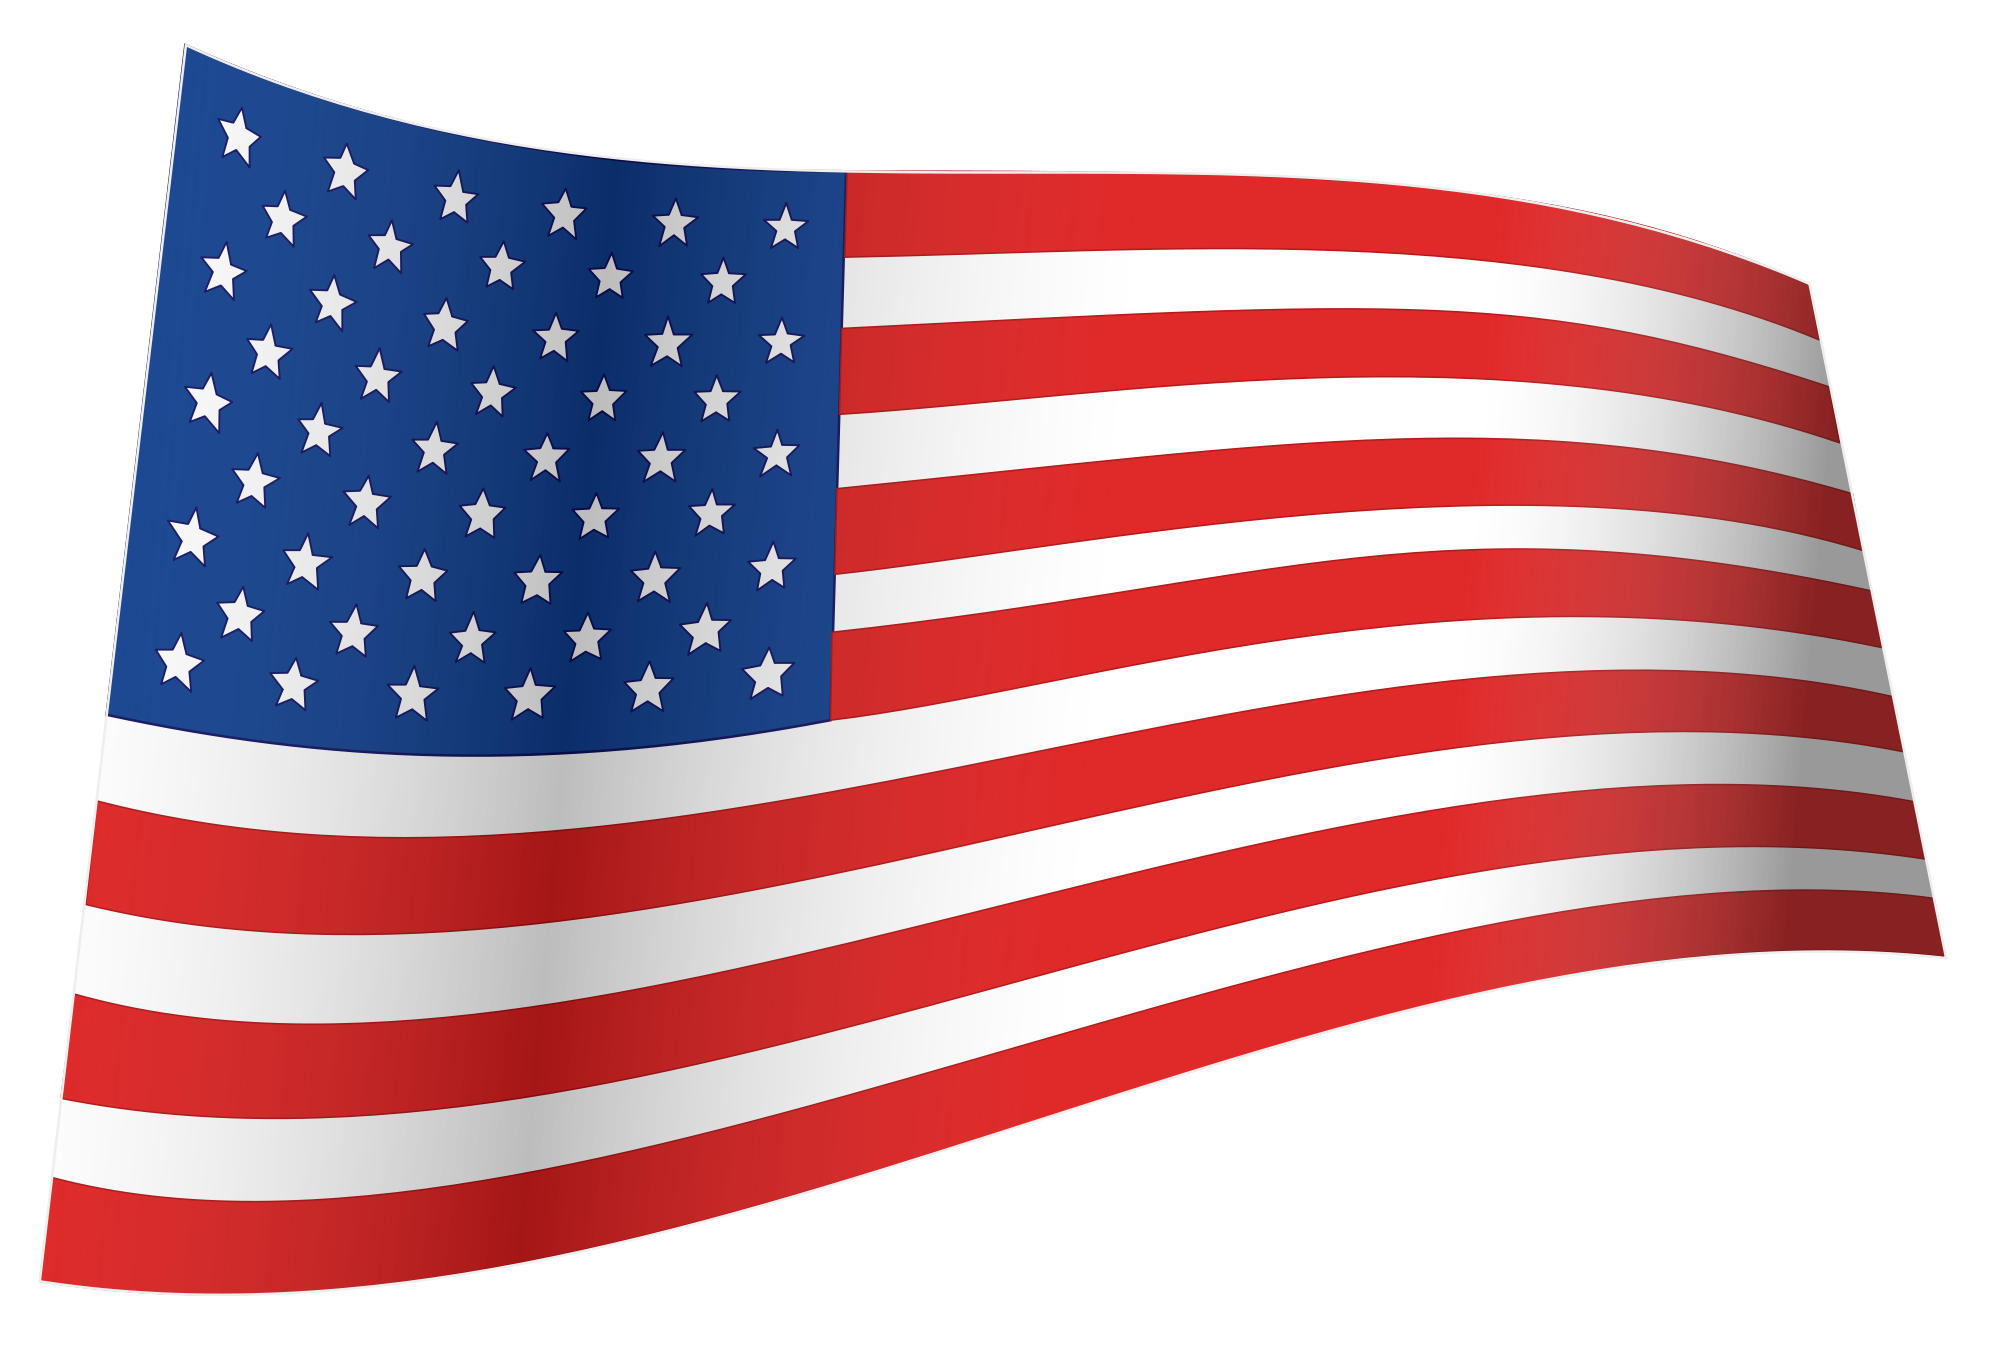 Clipart of us flag. File iconic waving svg